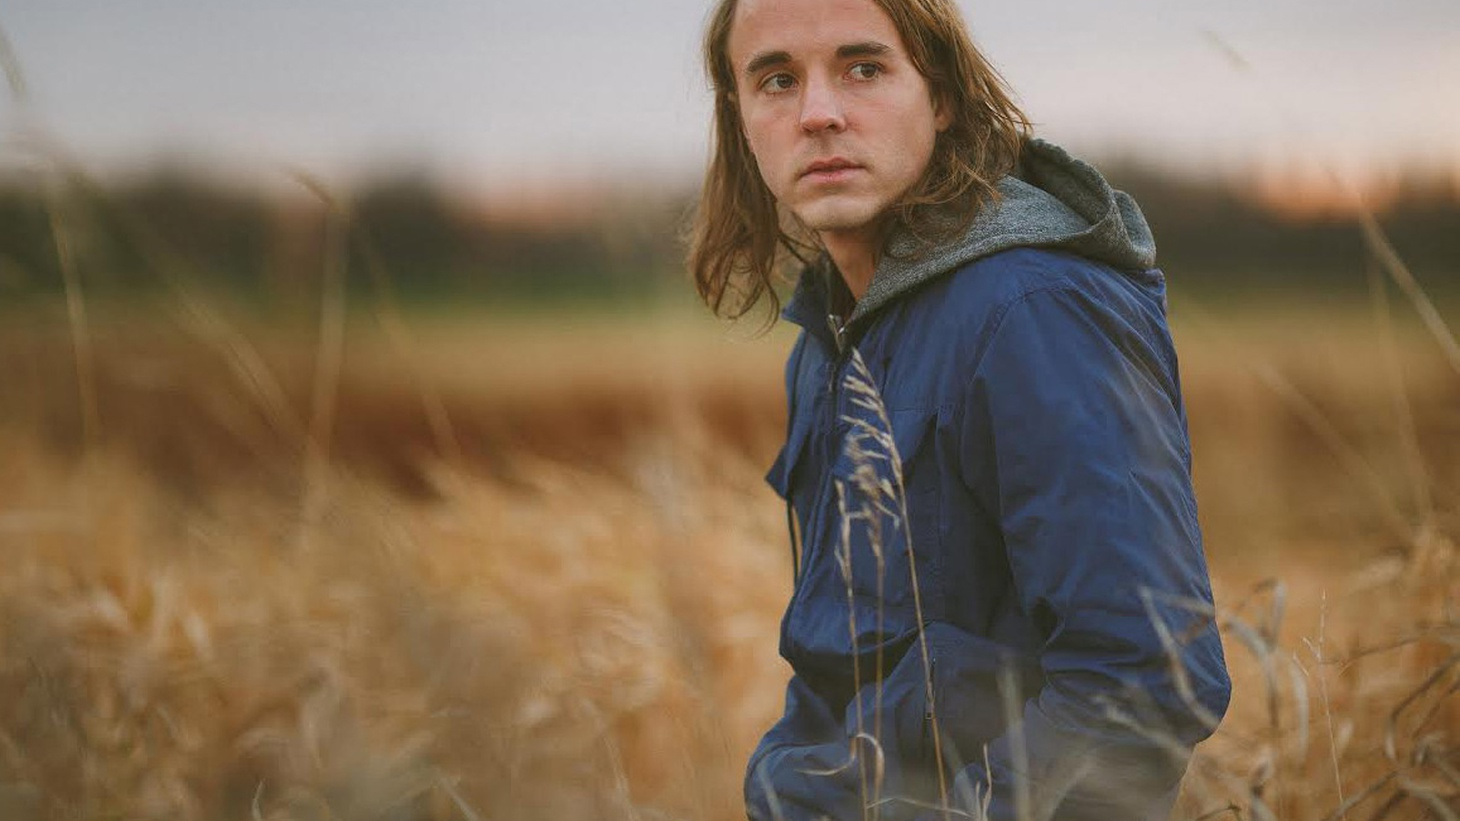 Charming Canadian singer/songwriter Andy Shauf made his album debut with a collection of seemingly lonely songs with optimistic touches that smartly color his tunes.